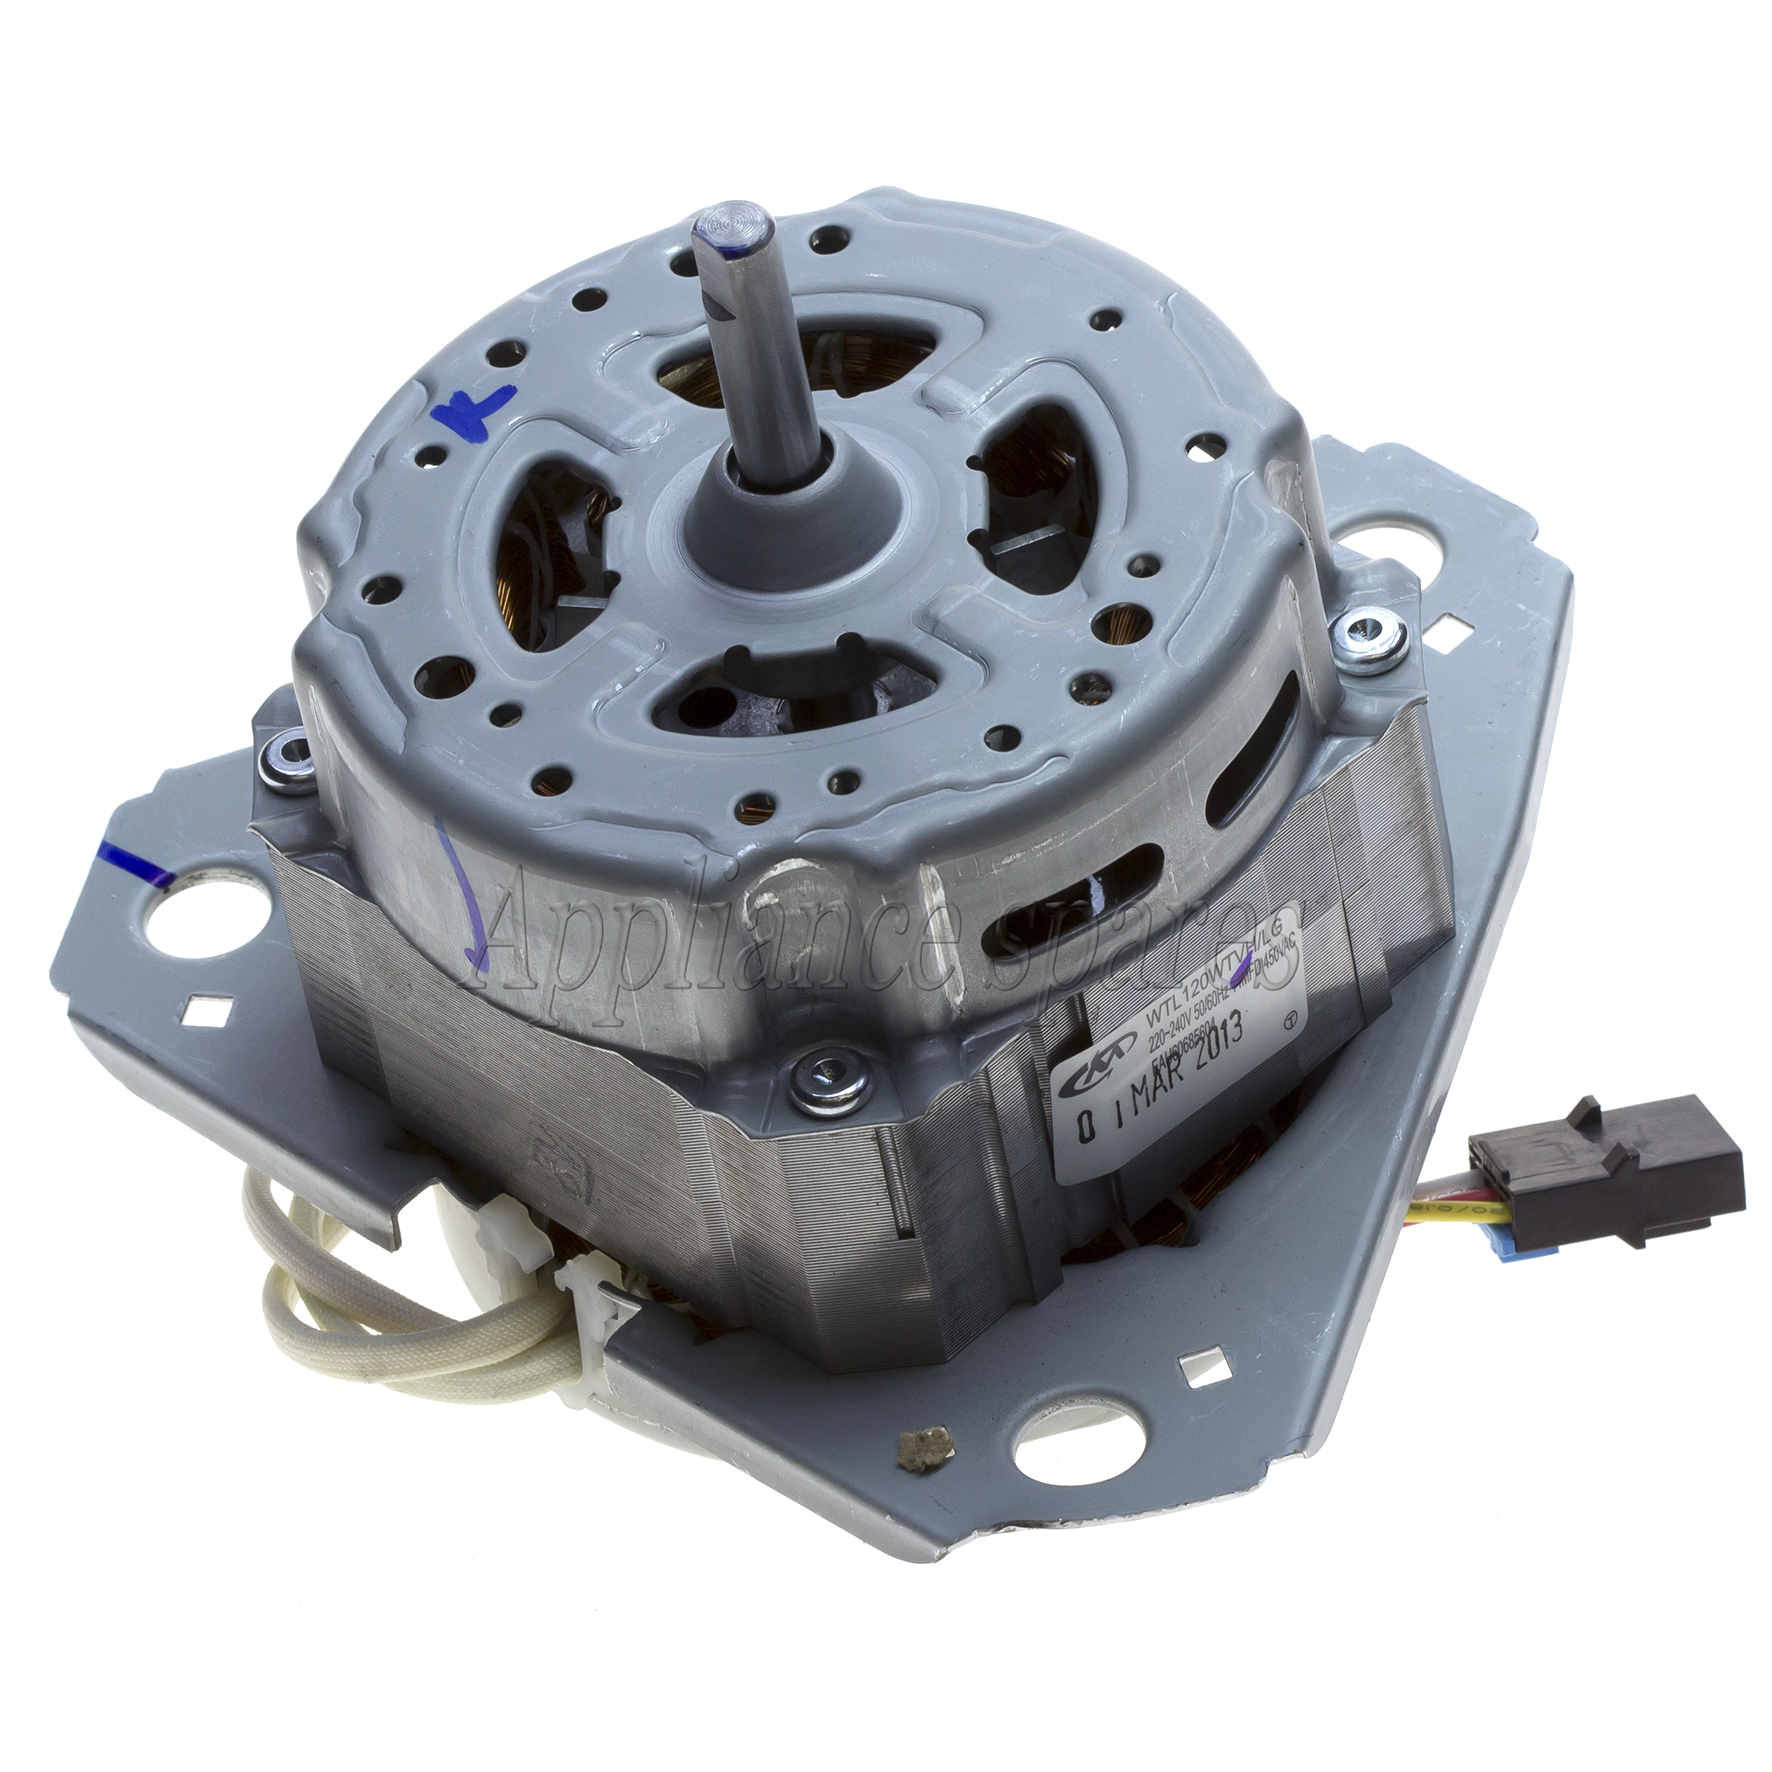 Lg Twin Tub Washing Machine Wash Motor Assembly Lategan